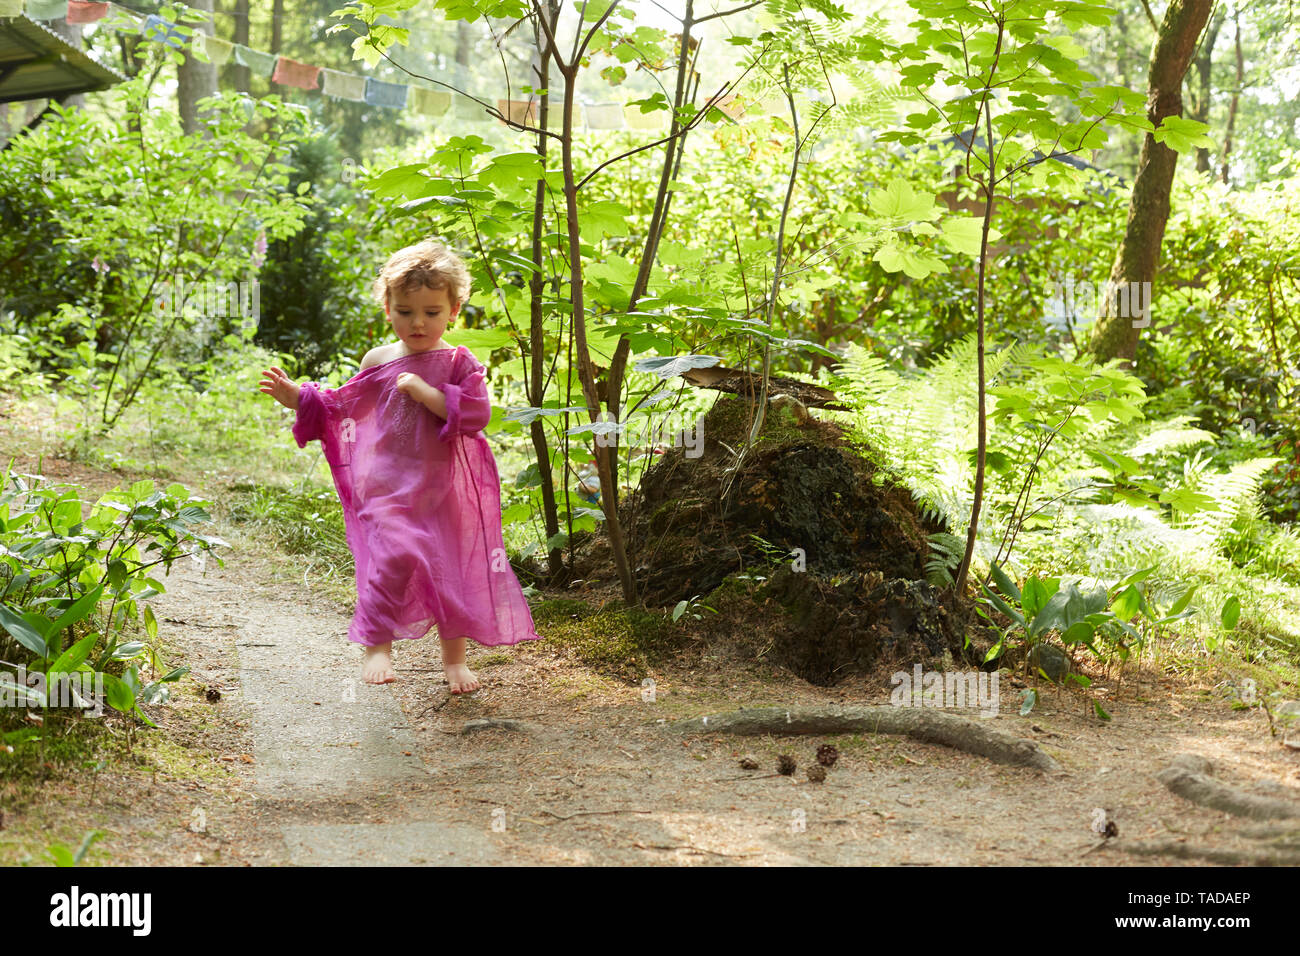 Little girl wearing pink tunic running in nature - Stock Image